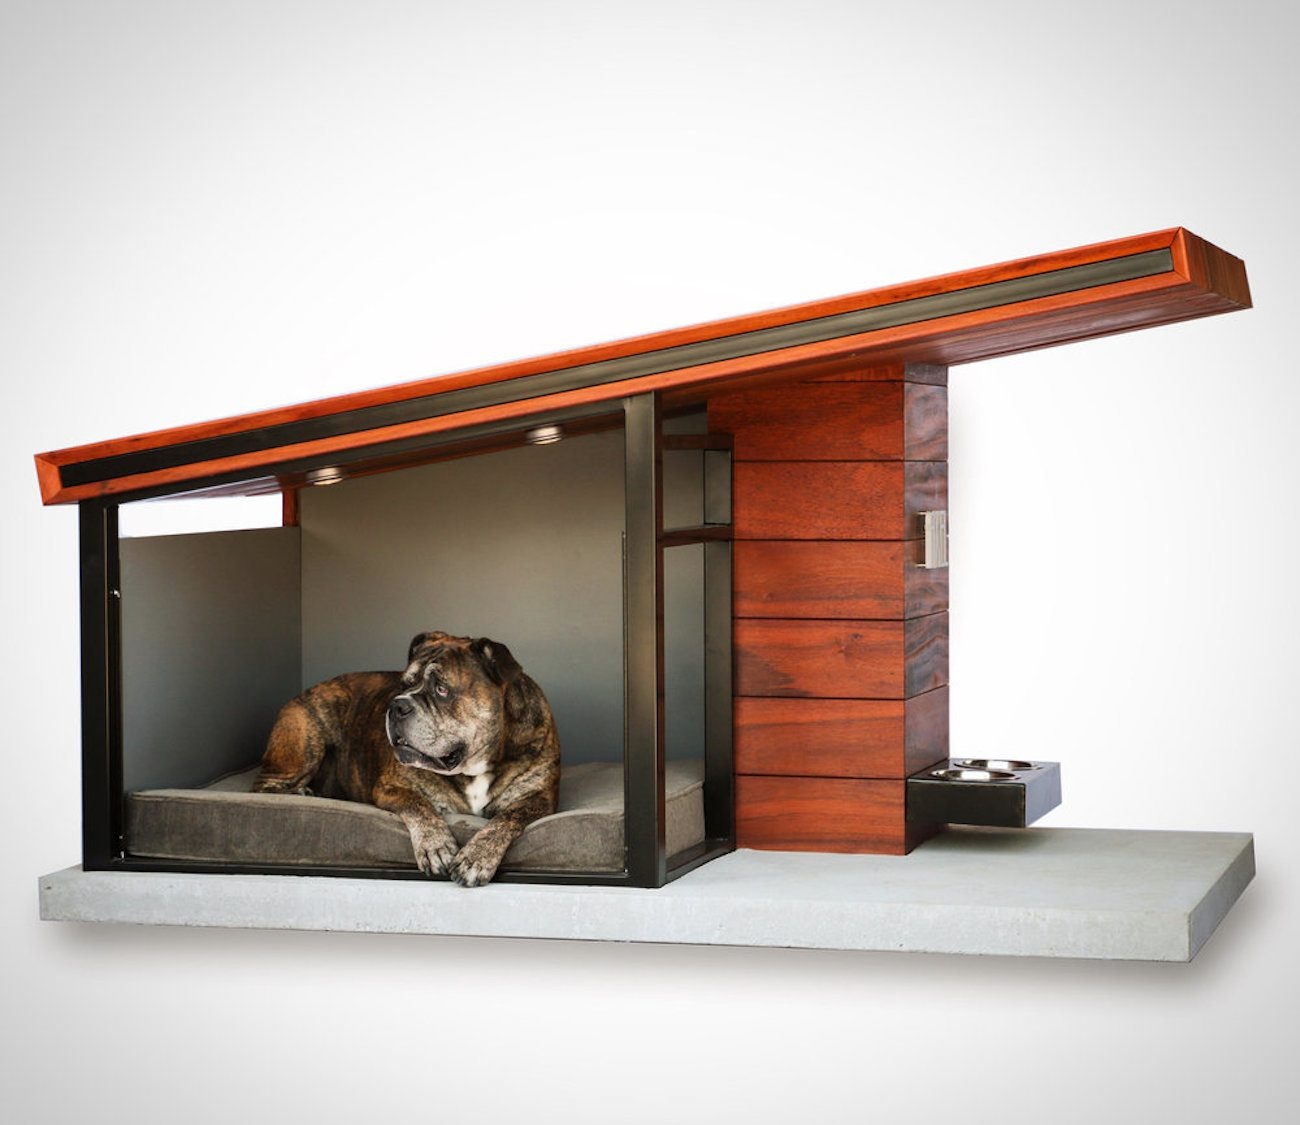 MDK9 Dog Haus Luxury Dog House